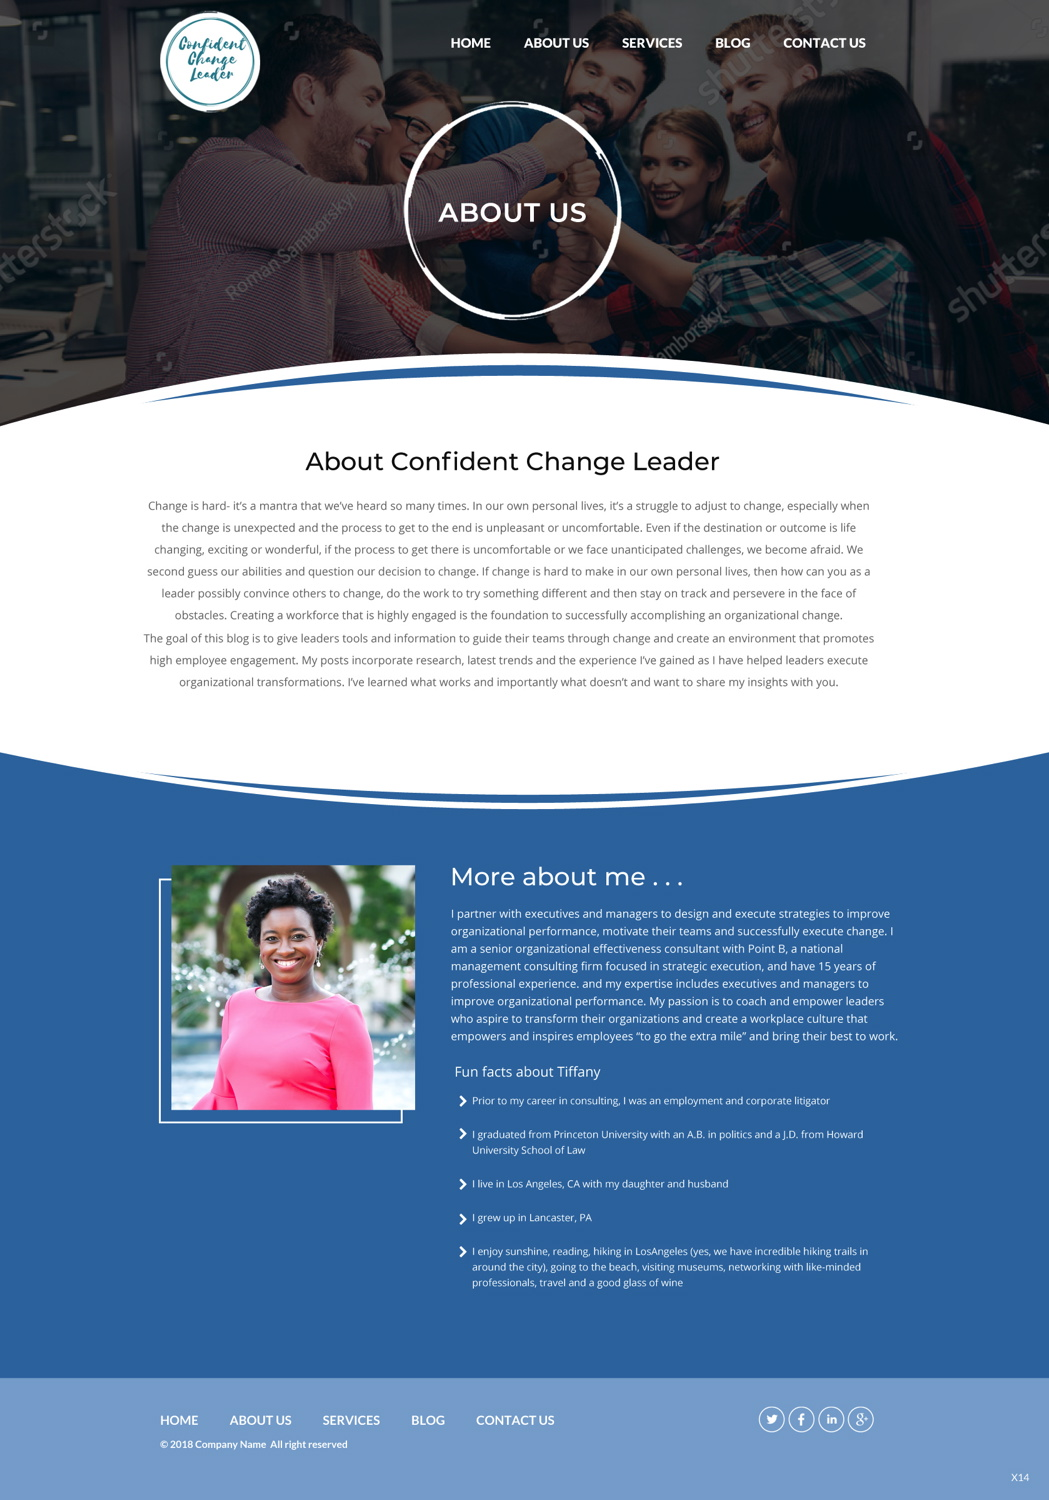 Upmarket Professional Management Consulting Web Design For A